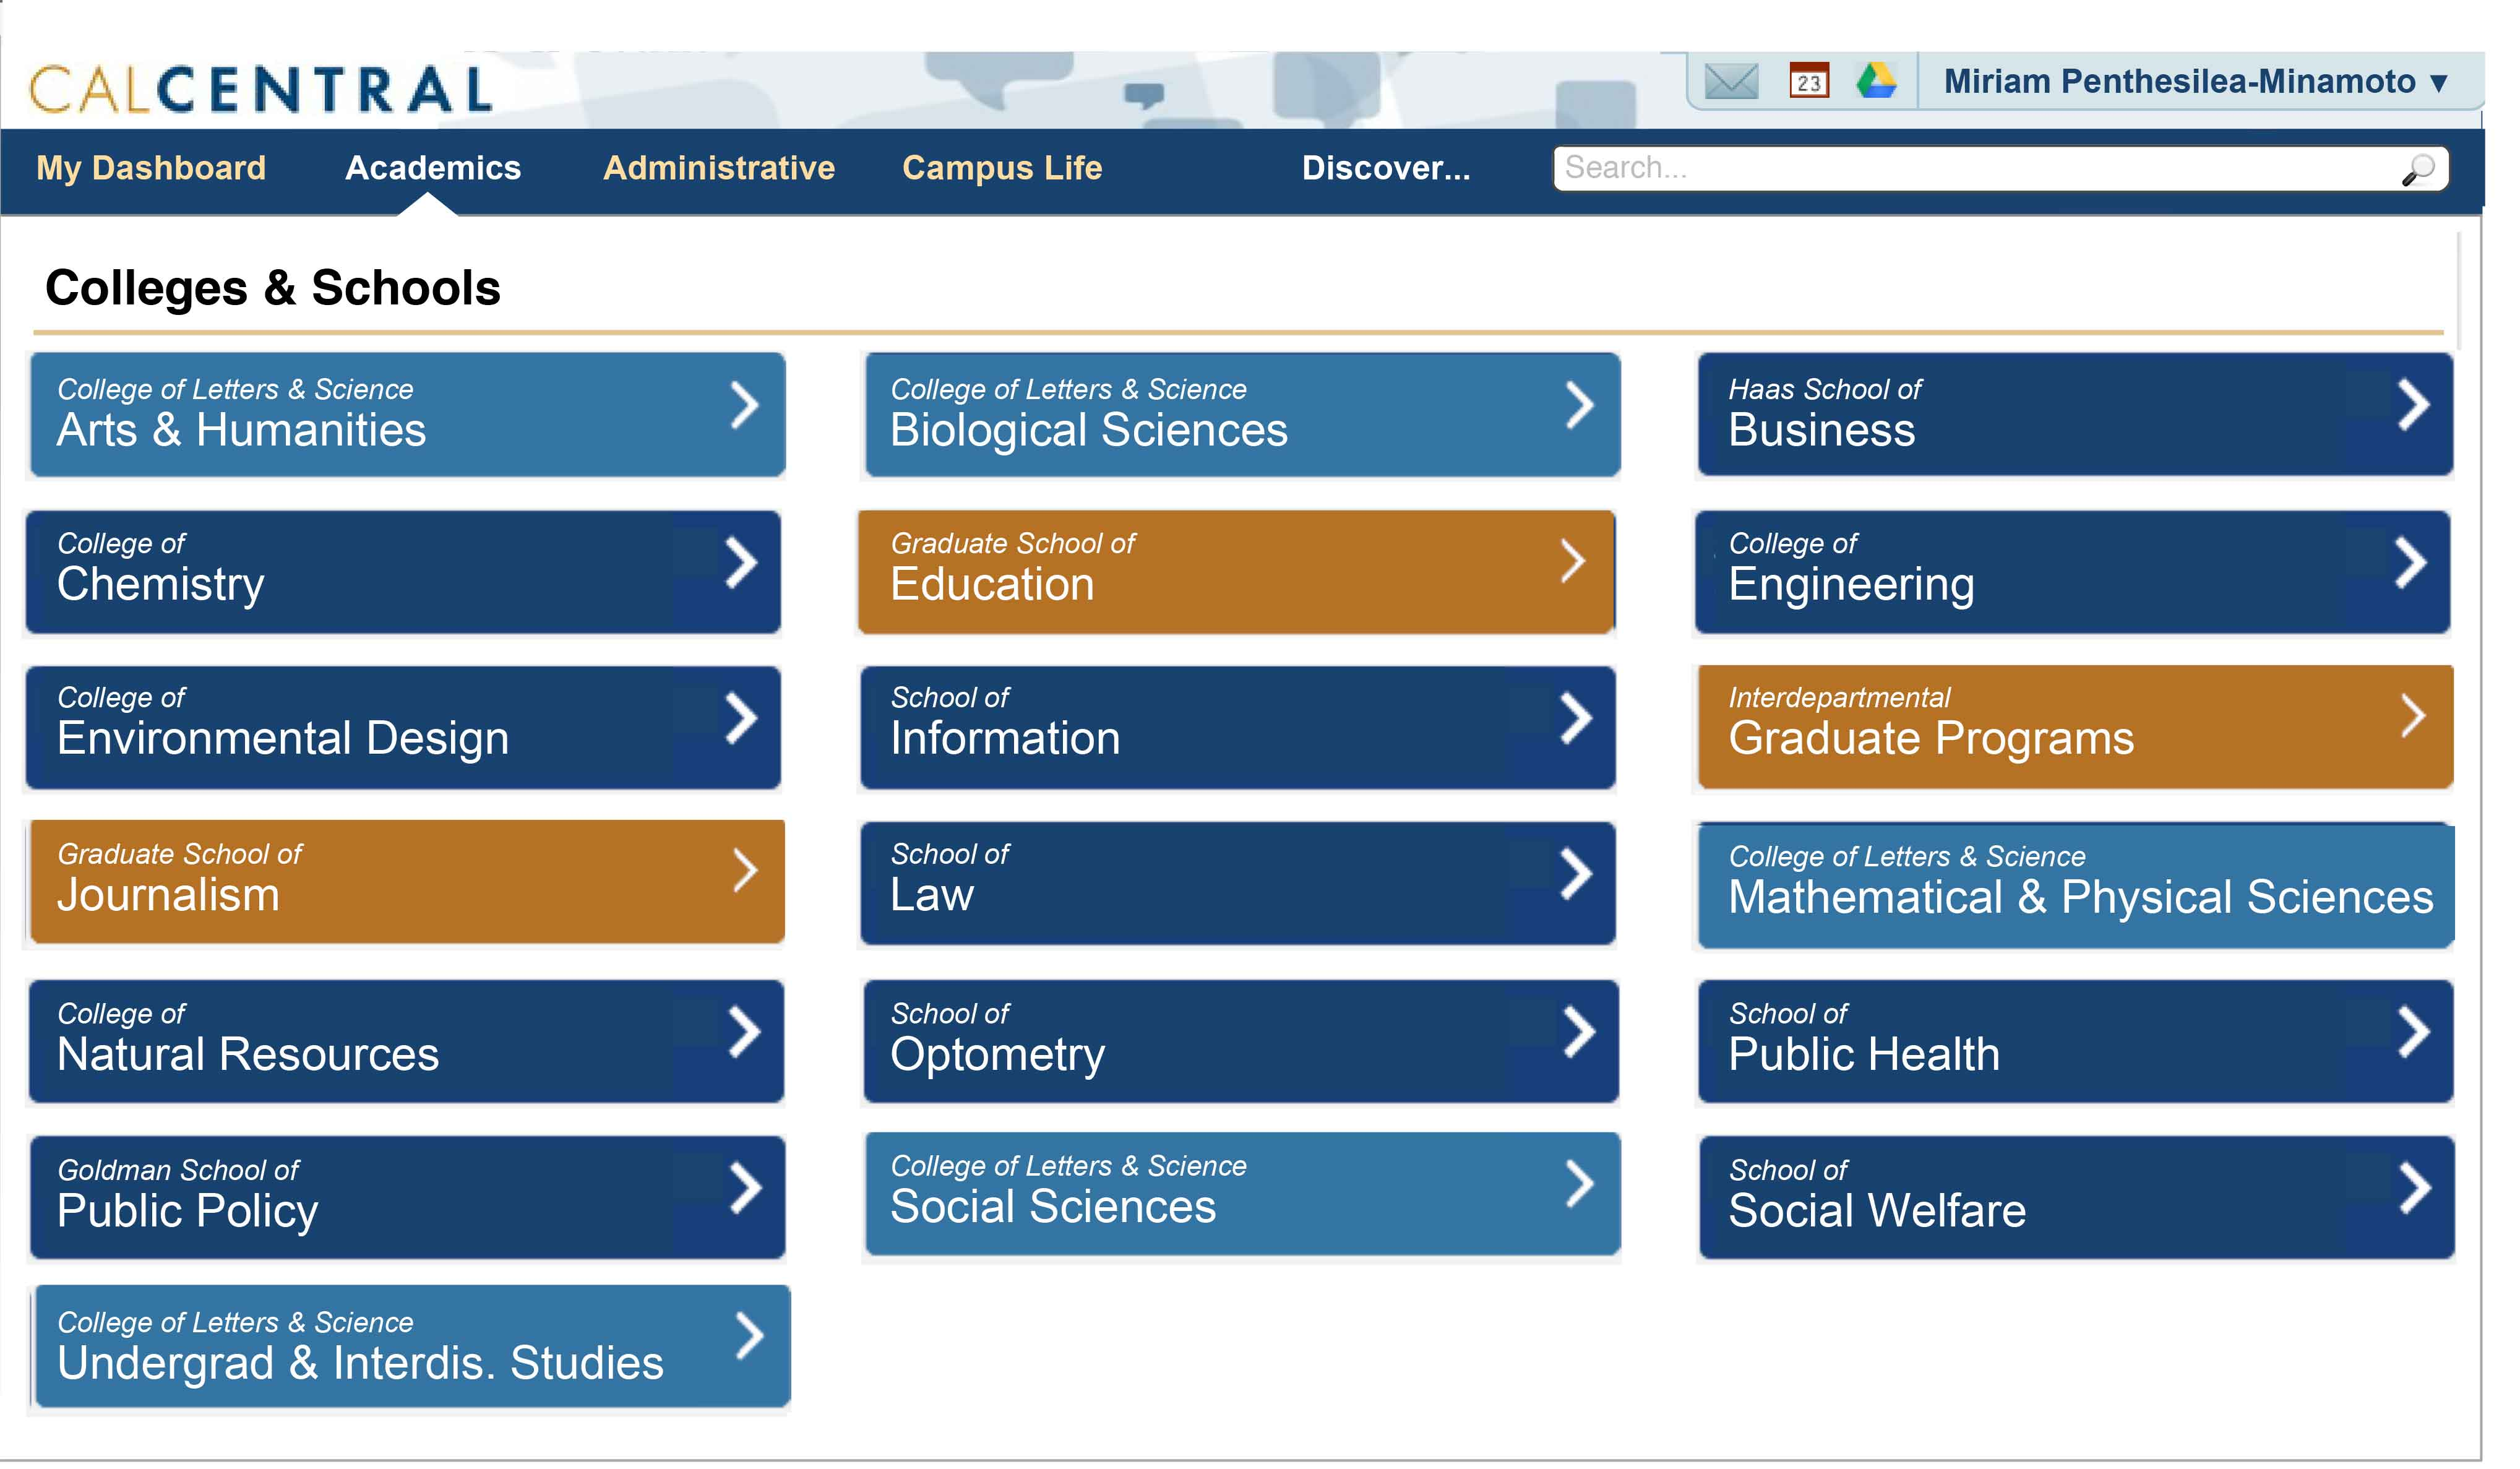 Course-Search-and-Browse-with-Class-Page-Wireframes---ver.-4_Colleges-&-Schools-page_web_cropped_Low_10